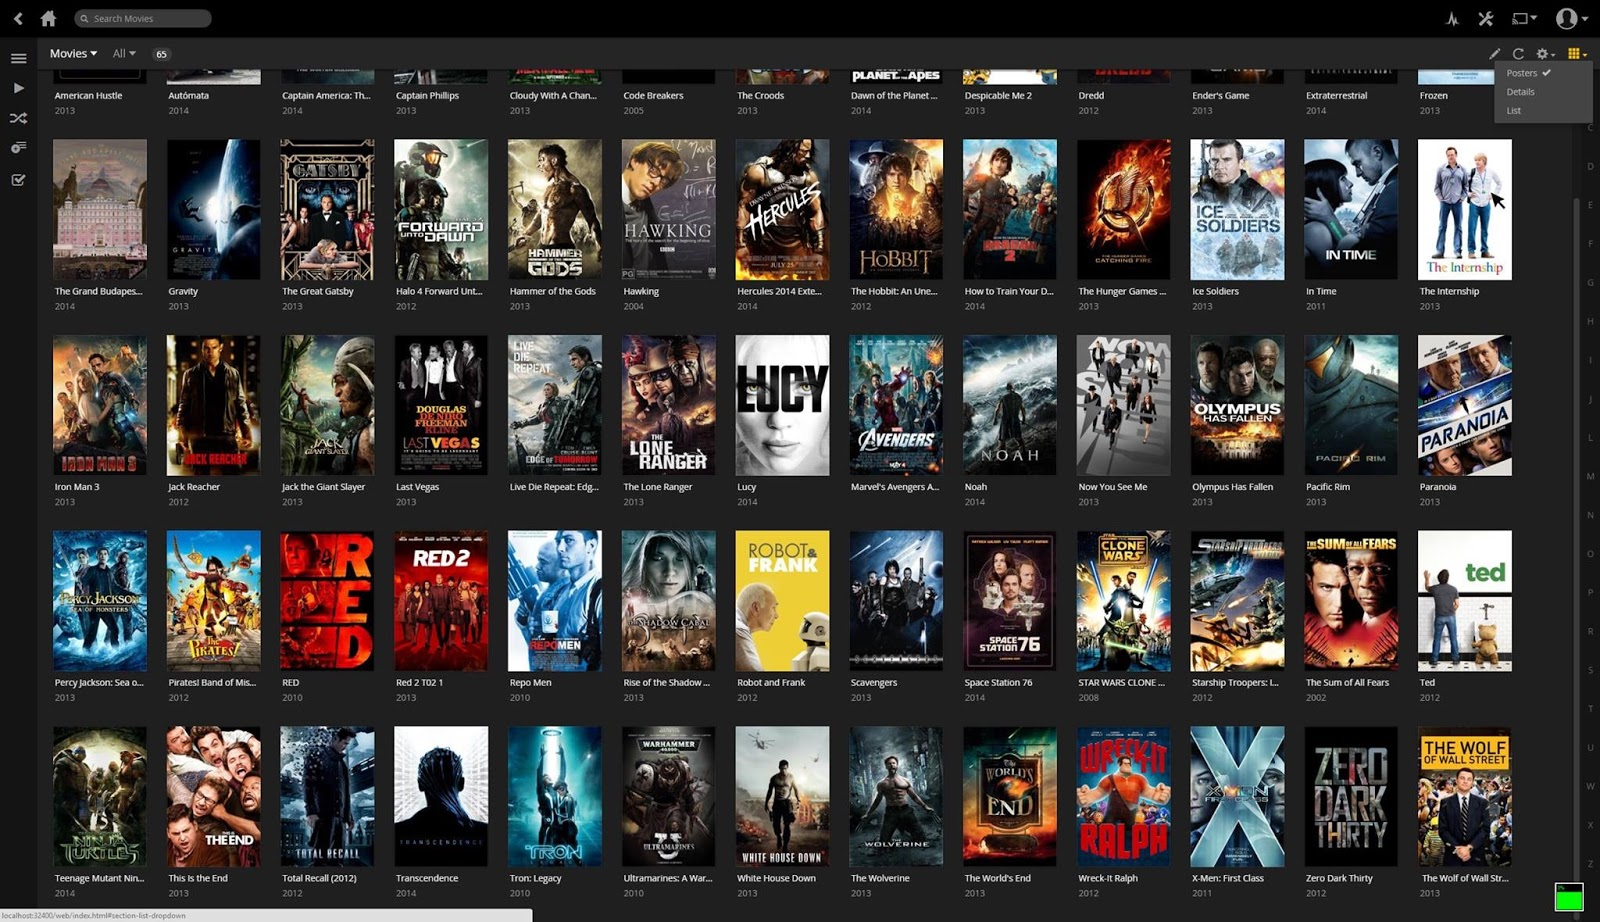 How+to+rip+and+store+DVD+on+Plex+Media+Sever+for+free+streaming.jpg